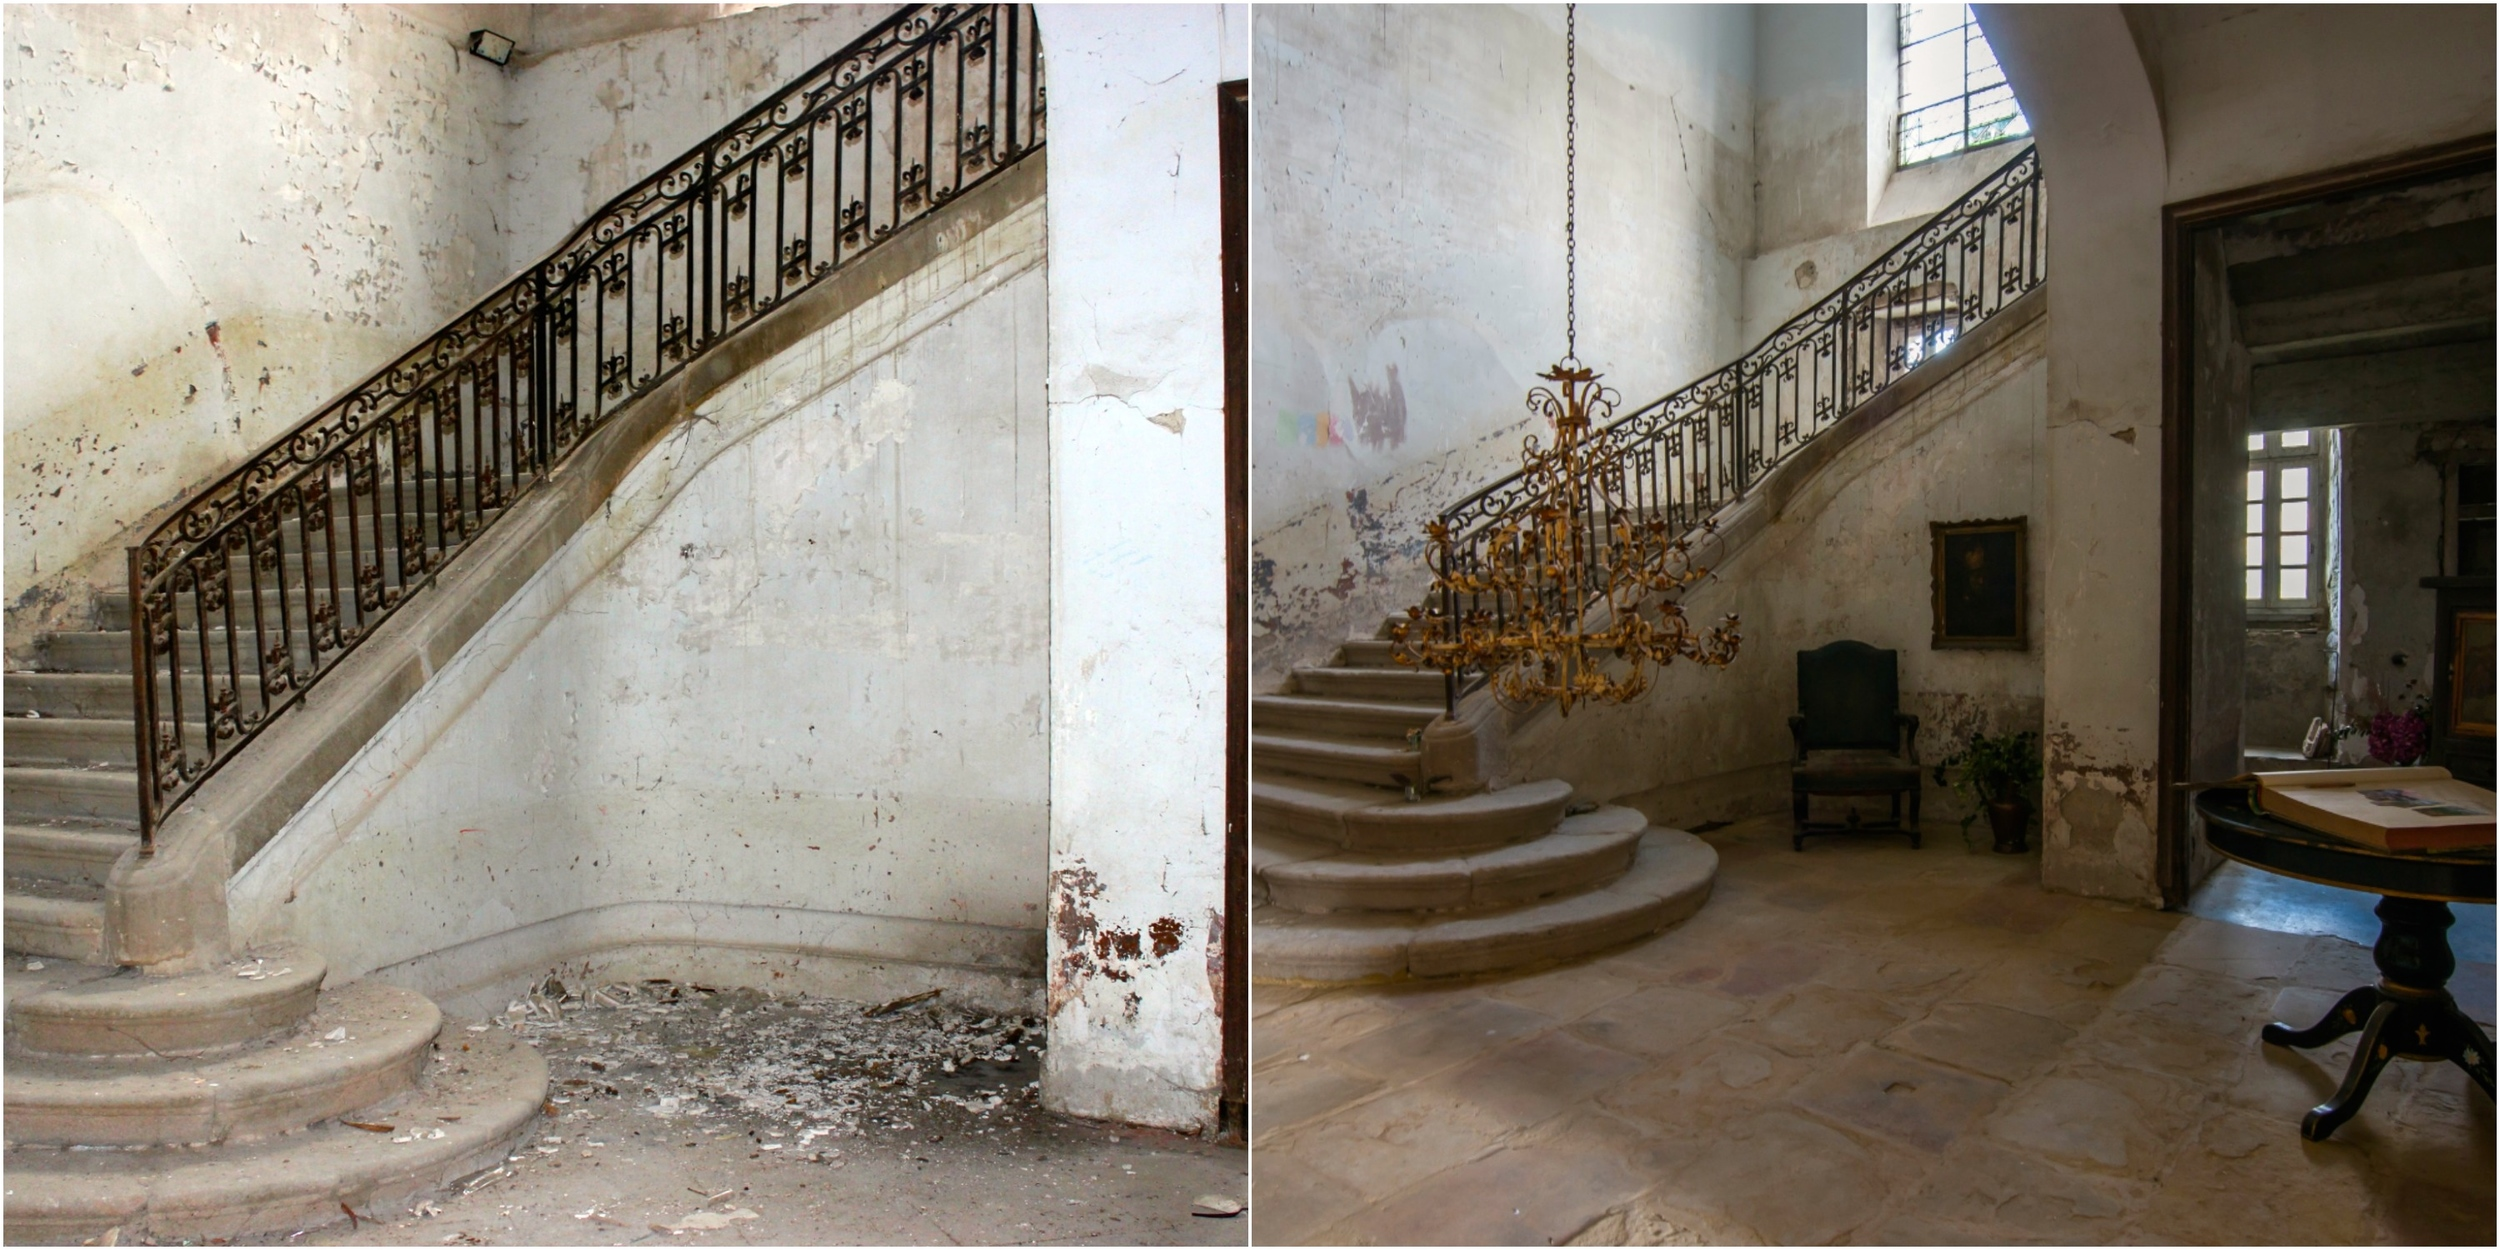 The vestibule before and after